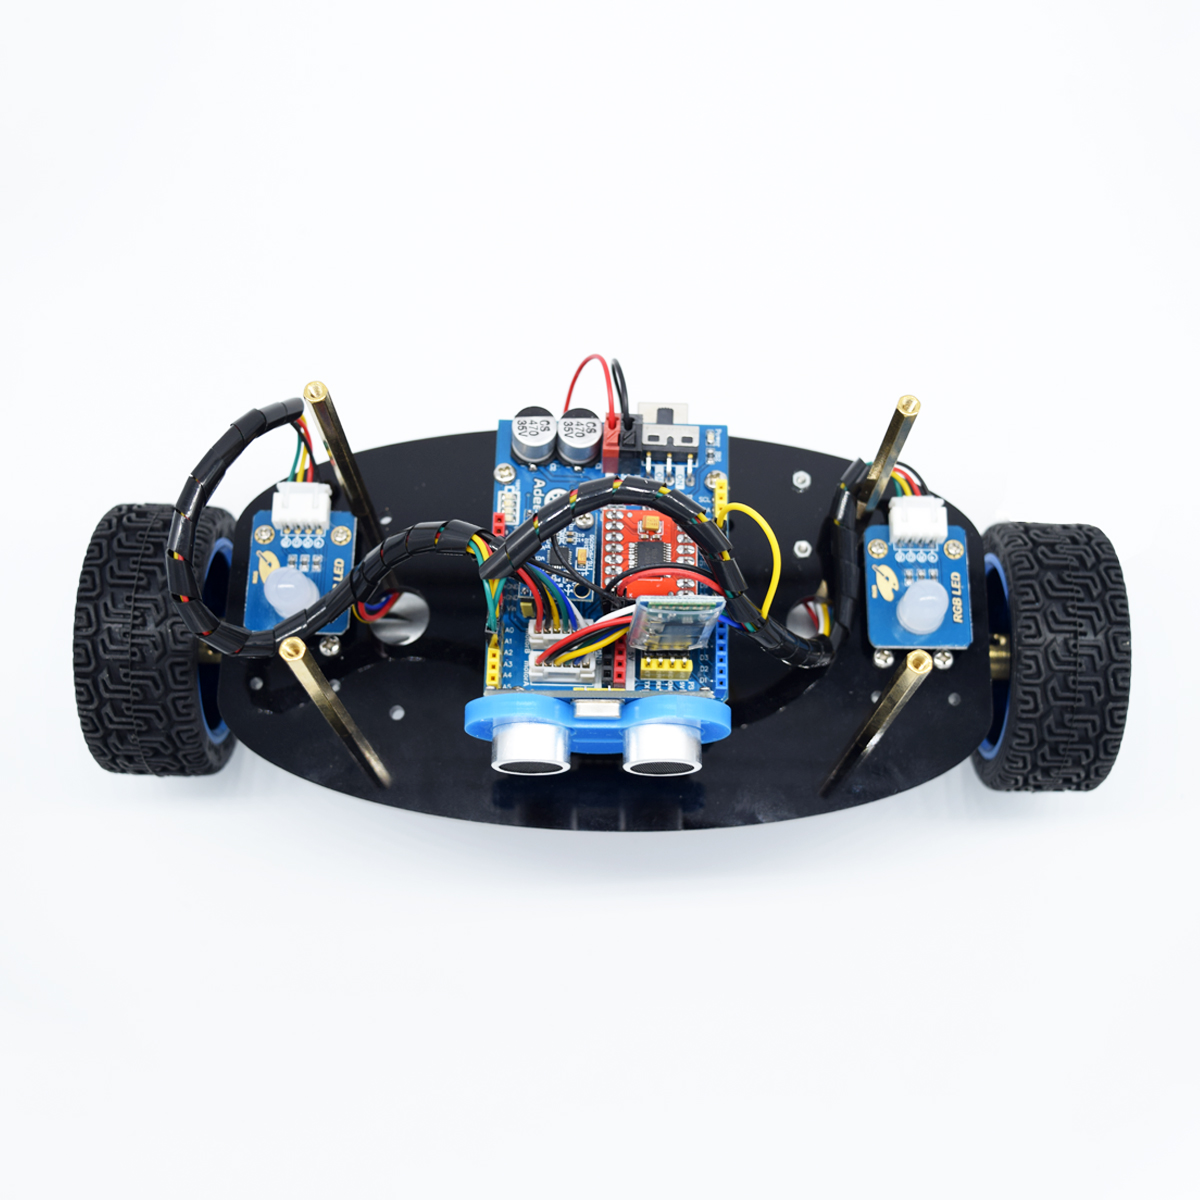 Wheel self balancing upright car robot kit for arduino